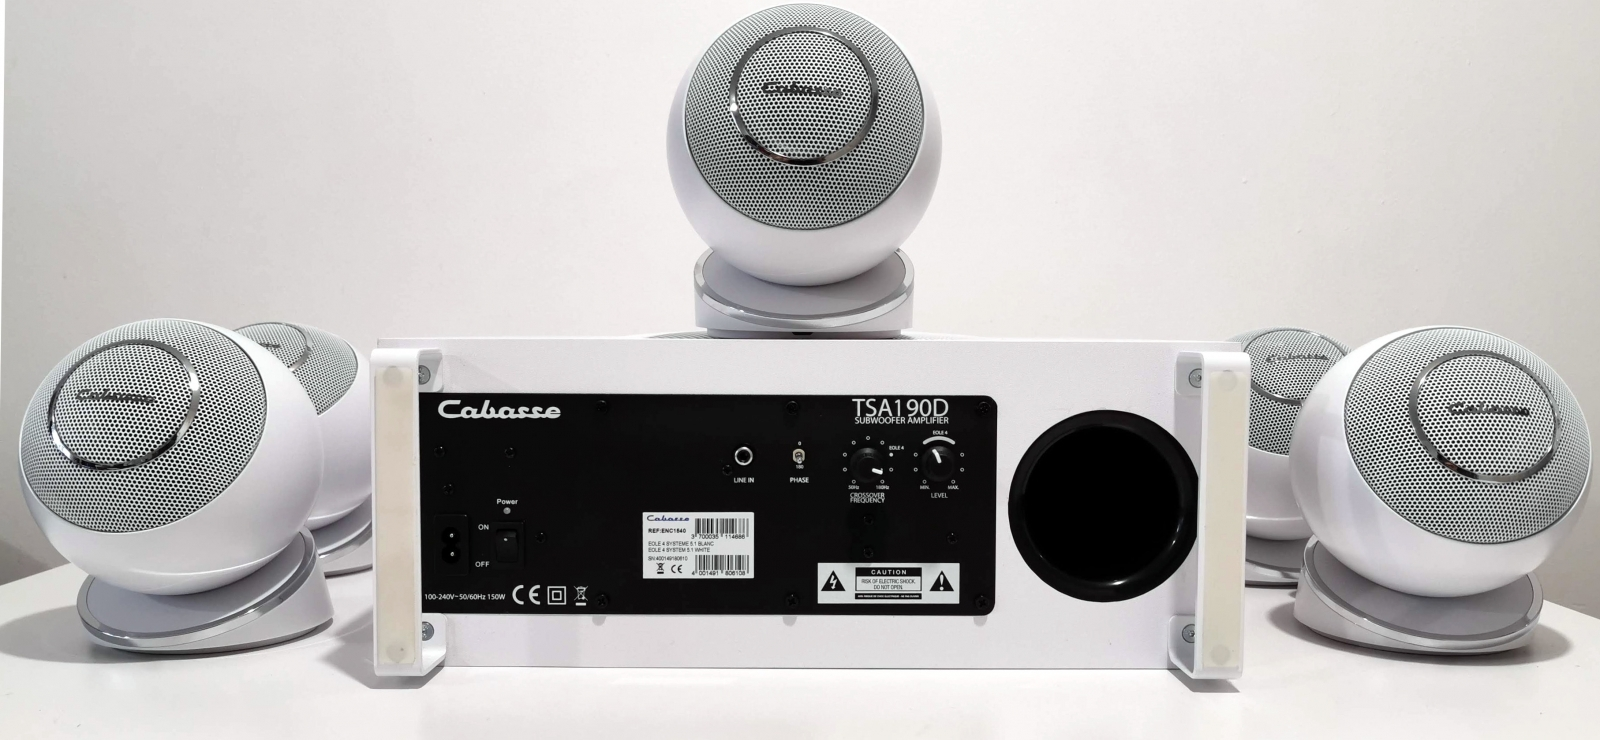 Cabasse Eole 4 review